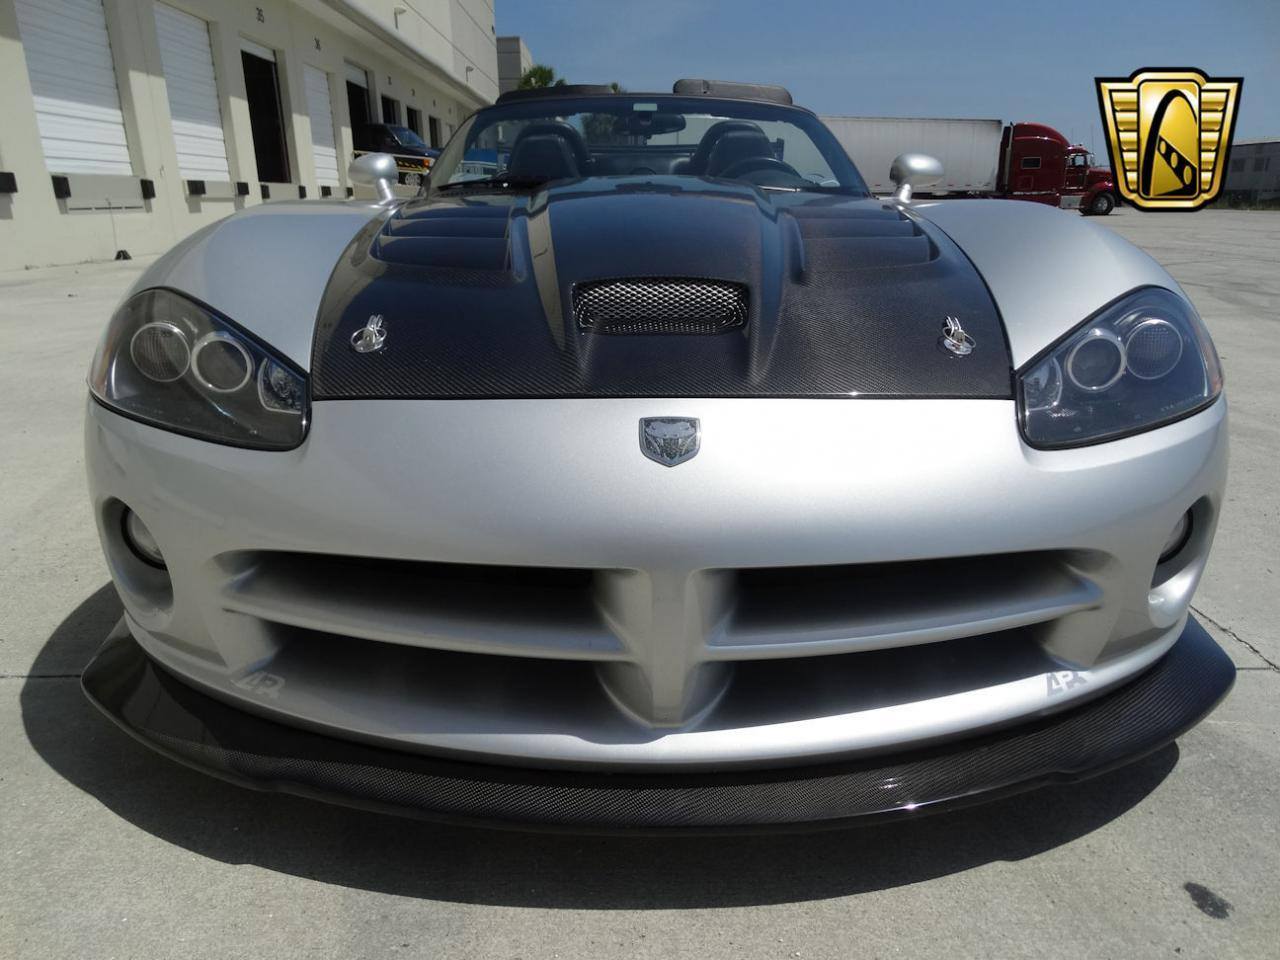 Large Picture of 2004 Dodge Viper located in Coral Springs Florida - $54,000.00 Offered by Gateway Classic Cars - Fort Lauderdale - L6GU